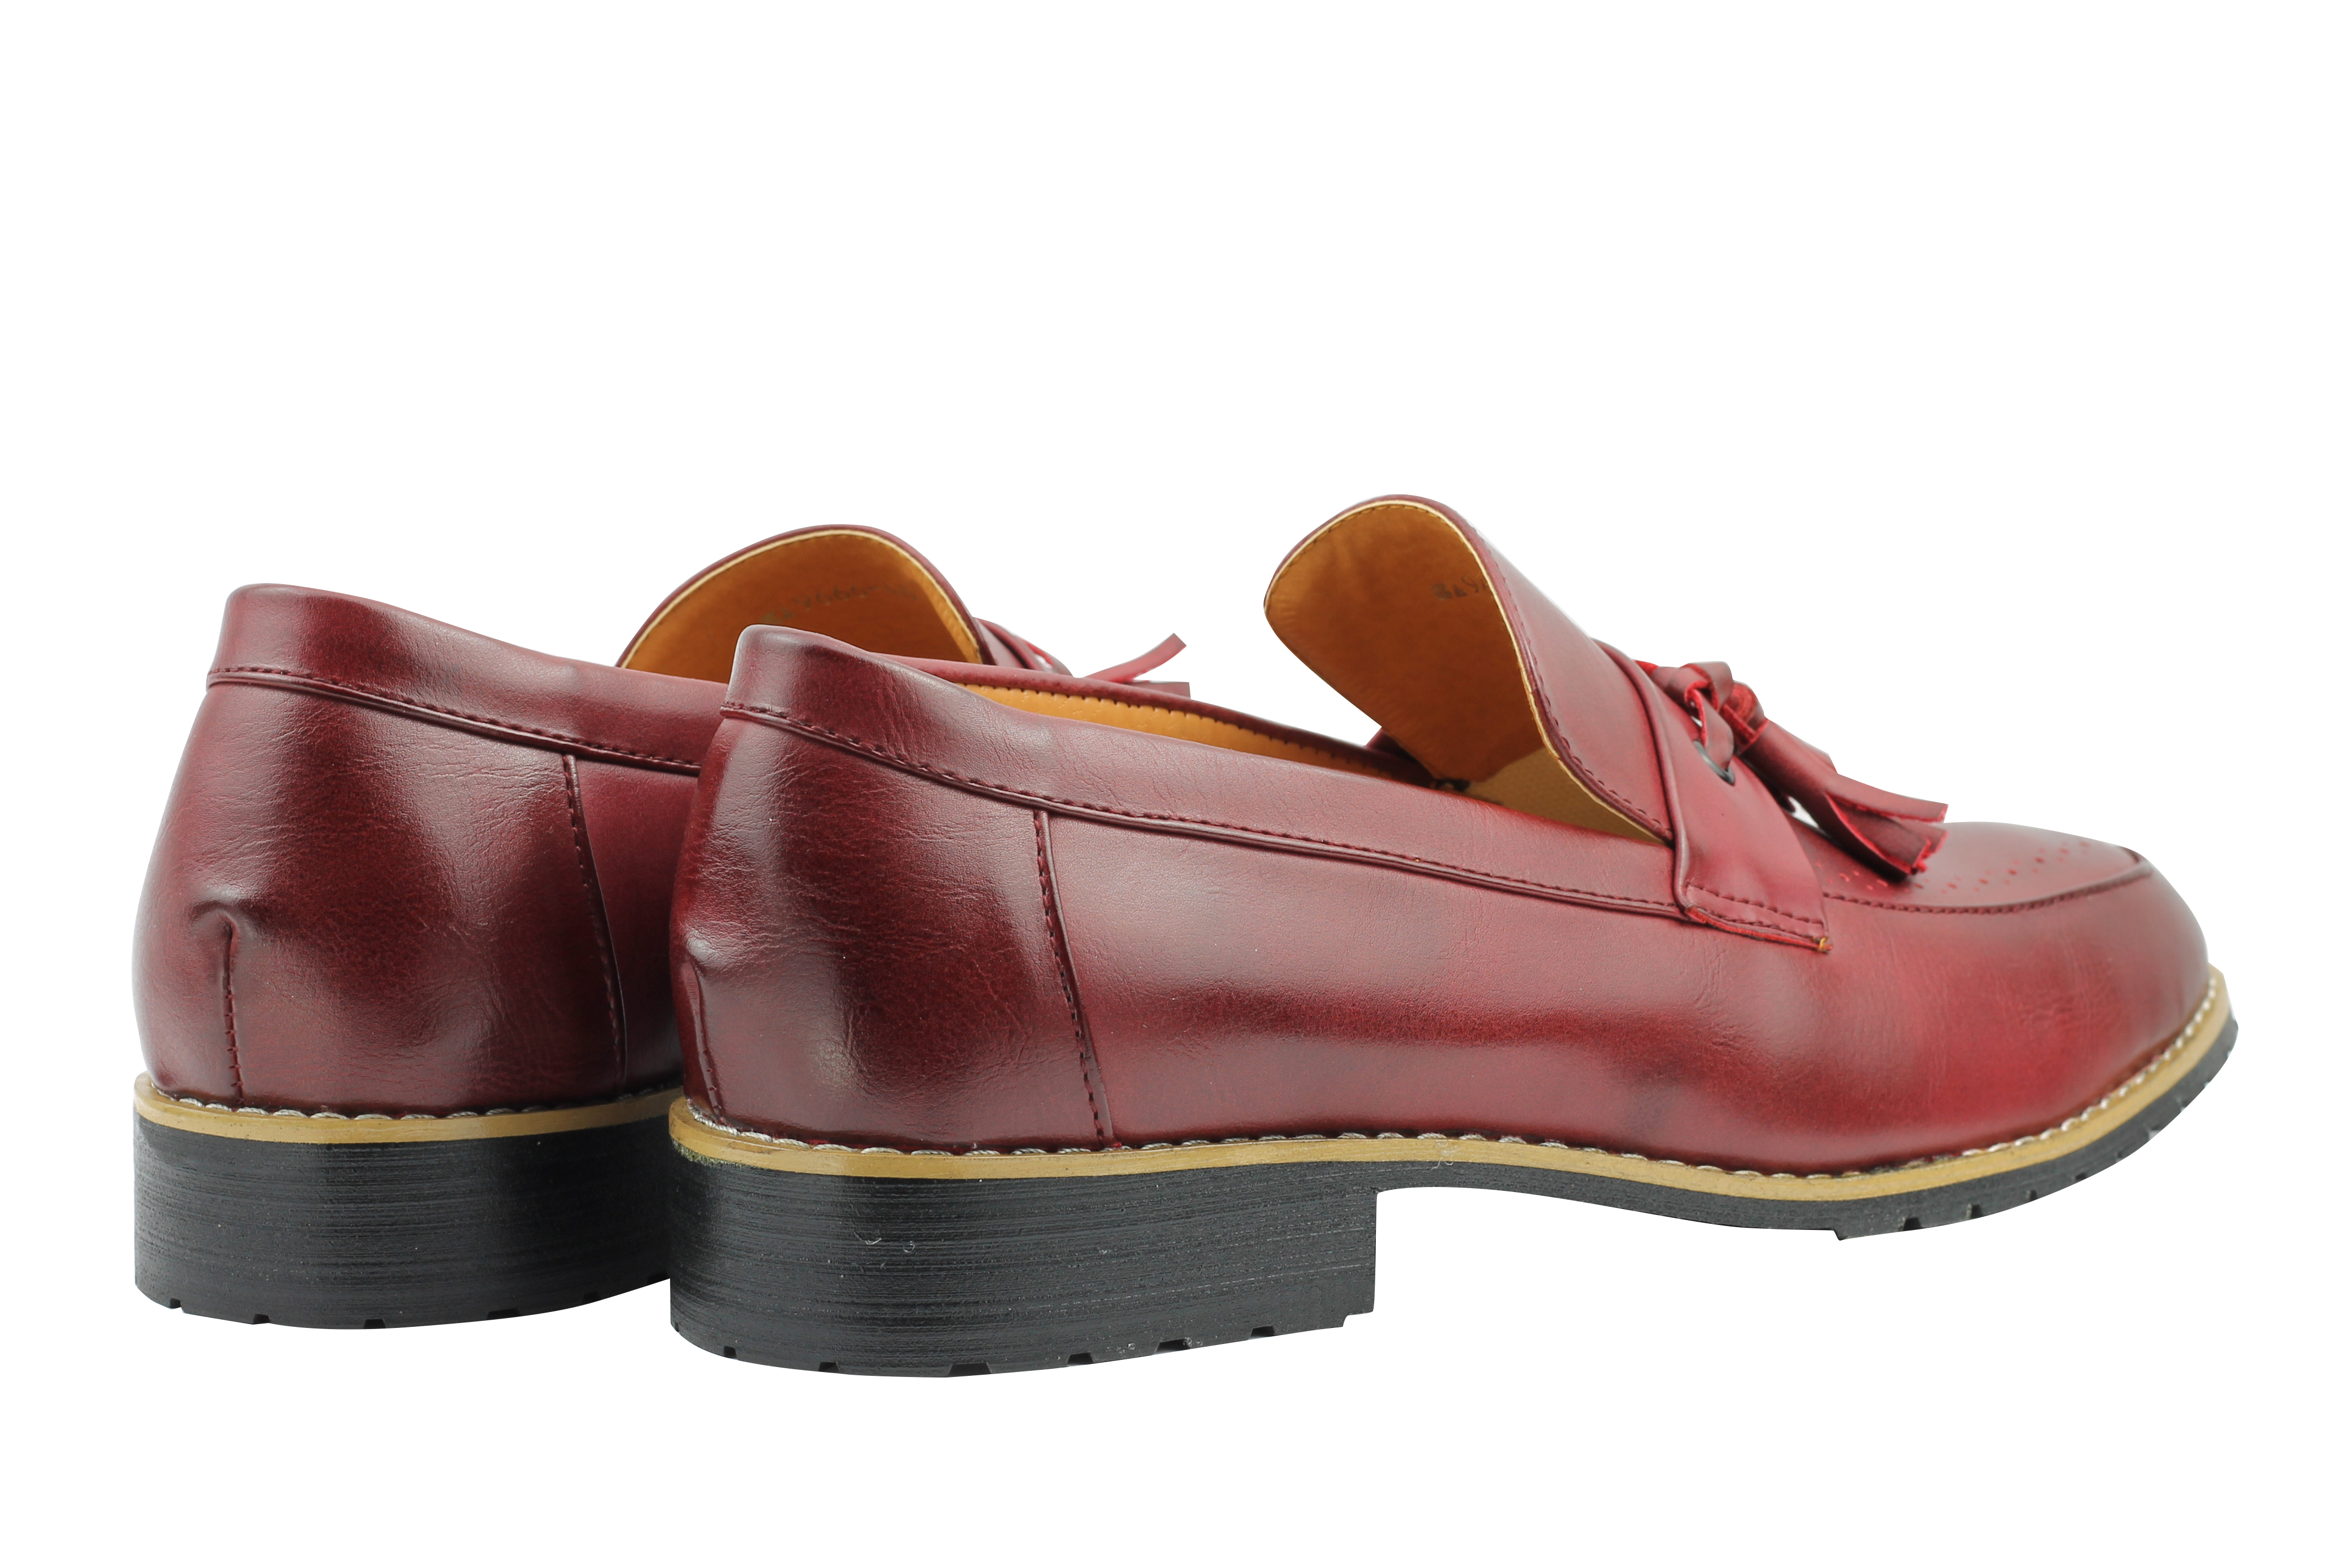 Mens-Leather-Lined-Maroon-Black-Tassel-Loafer-Smart-Casual-Slip-on-Driving-Shoes thumbnail 11